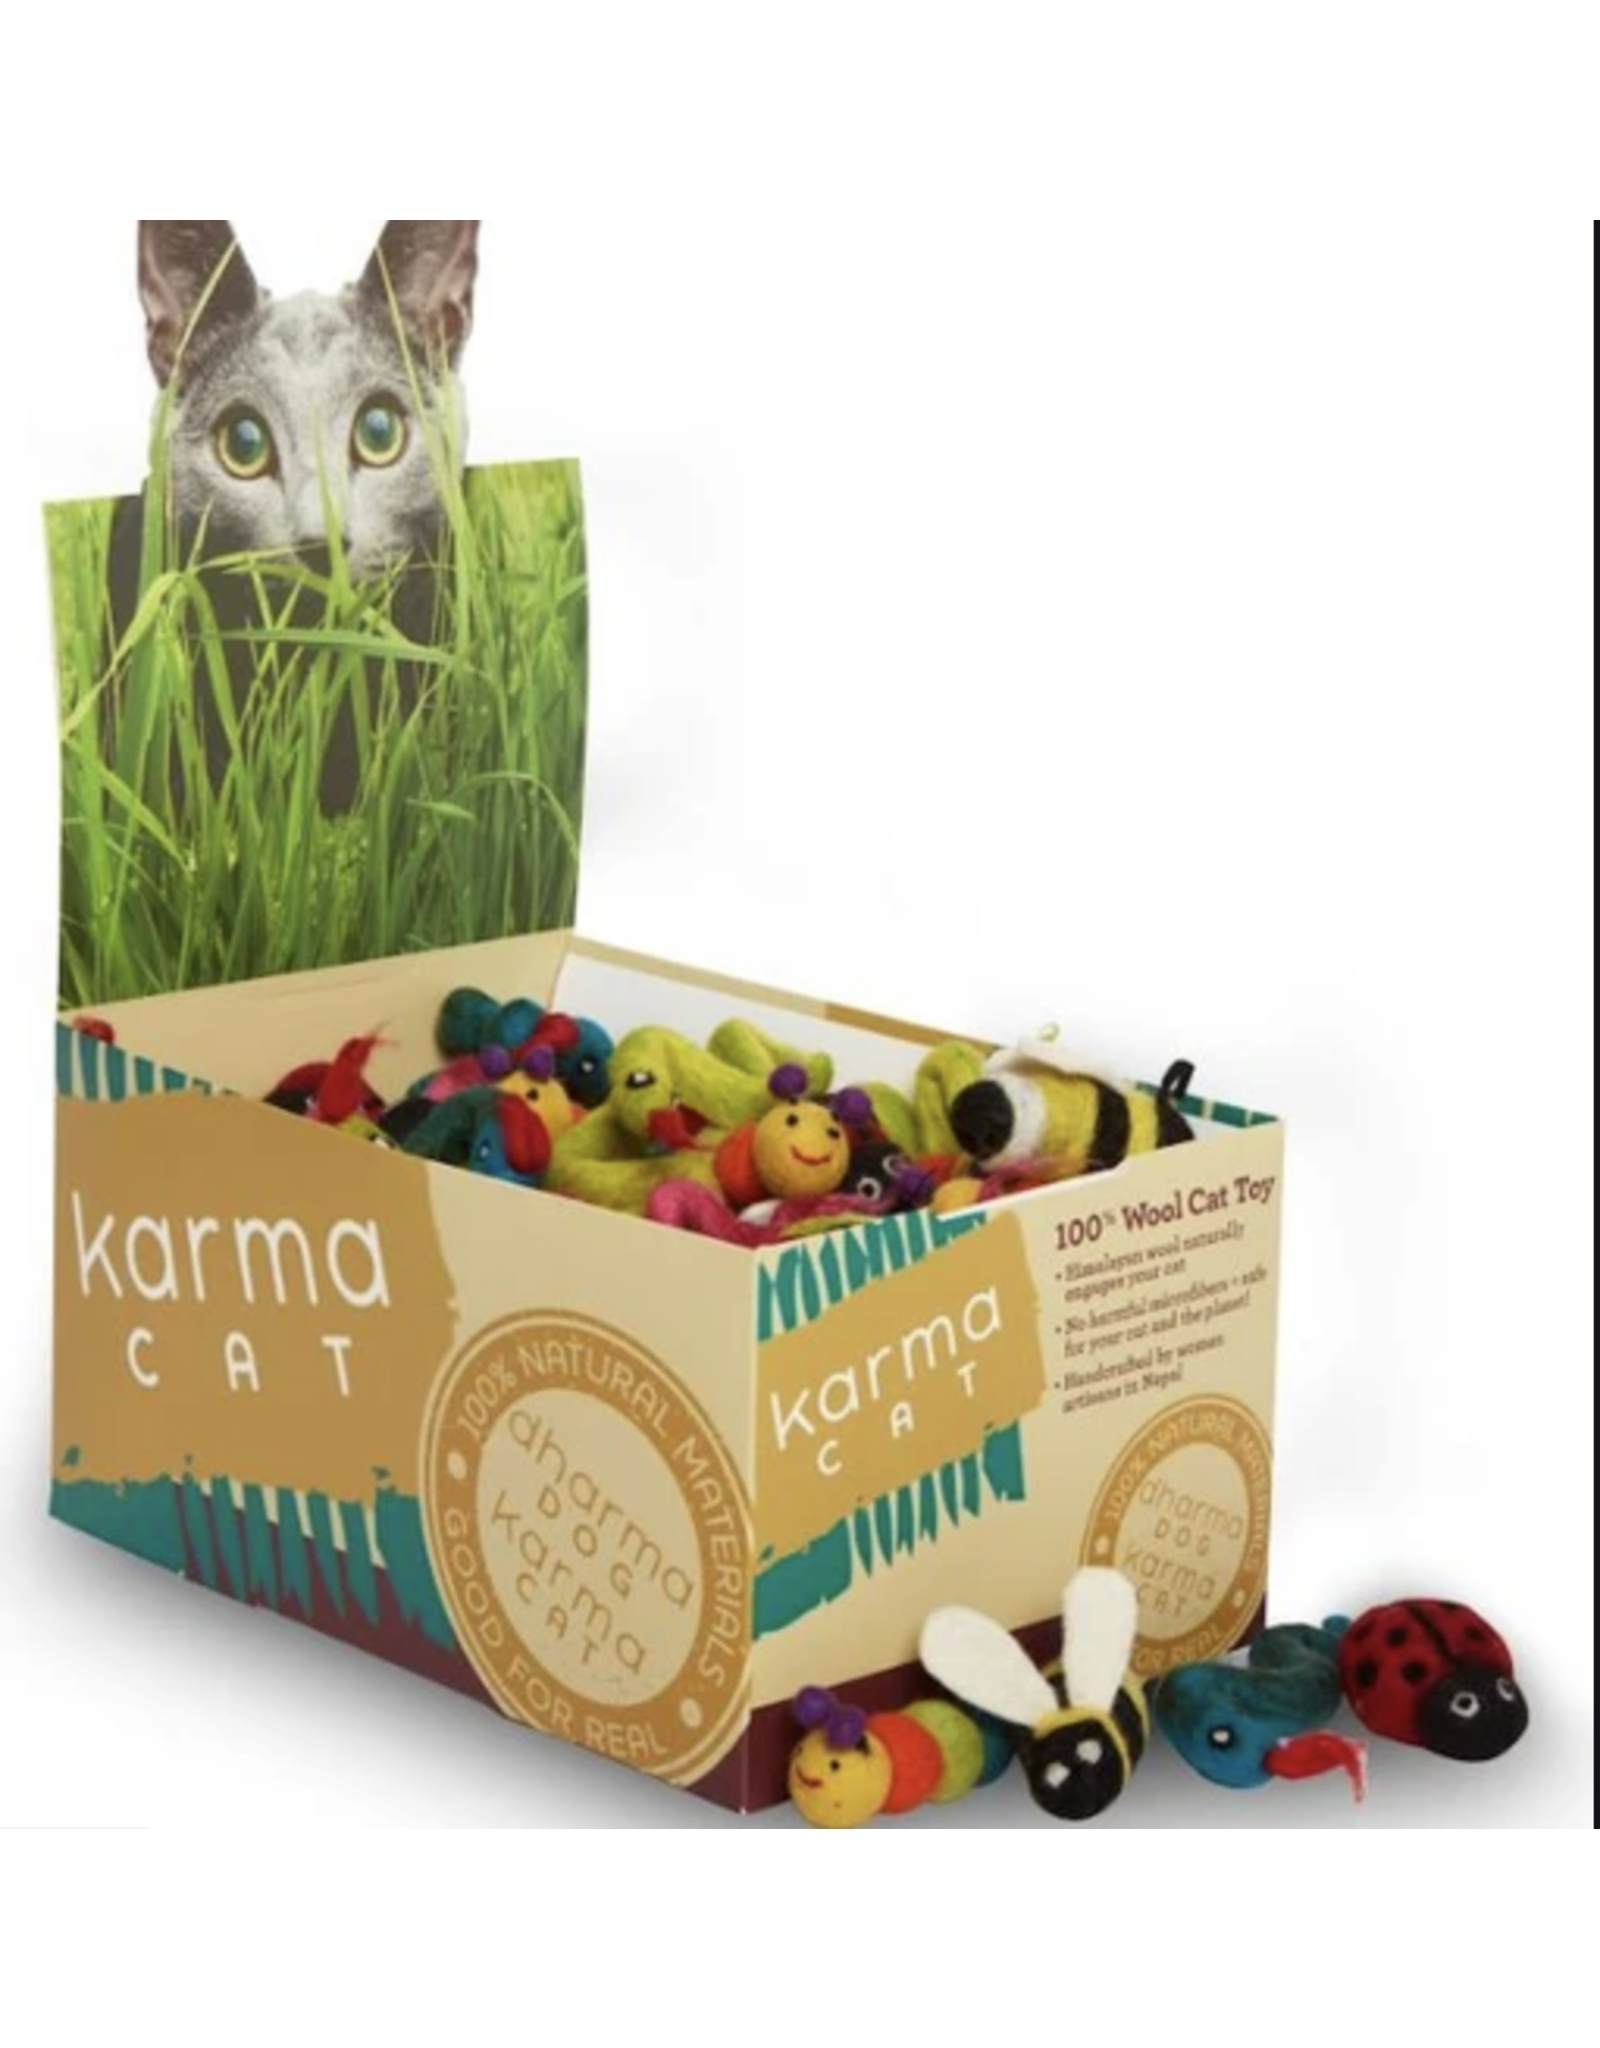 dharma dog and Karma cat Dharma Dog Karma Cat - Wool Felt Back Yard Bugs - Single